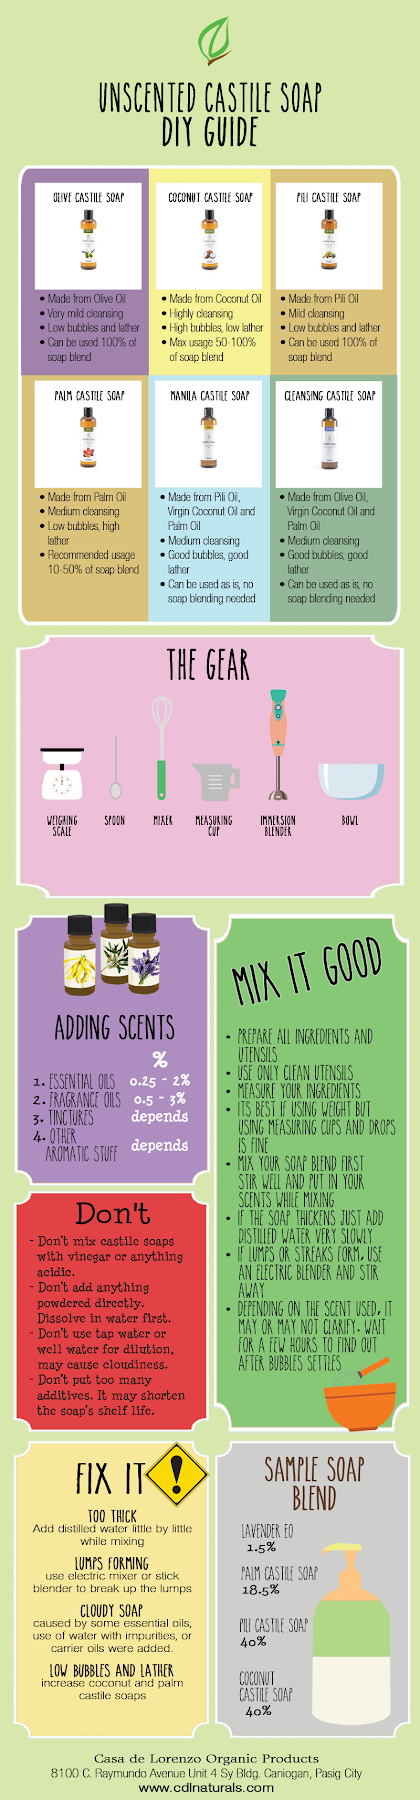 Infographic on Using CDL Naturals Castile Soap